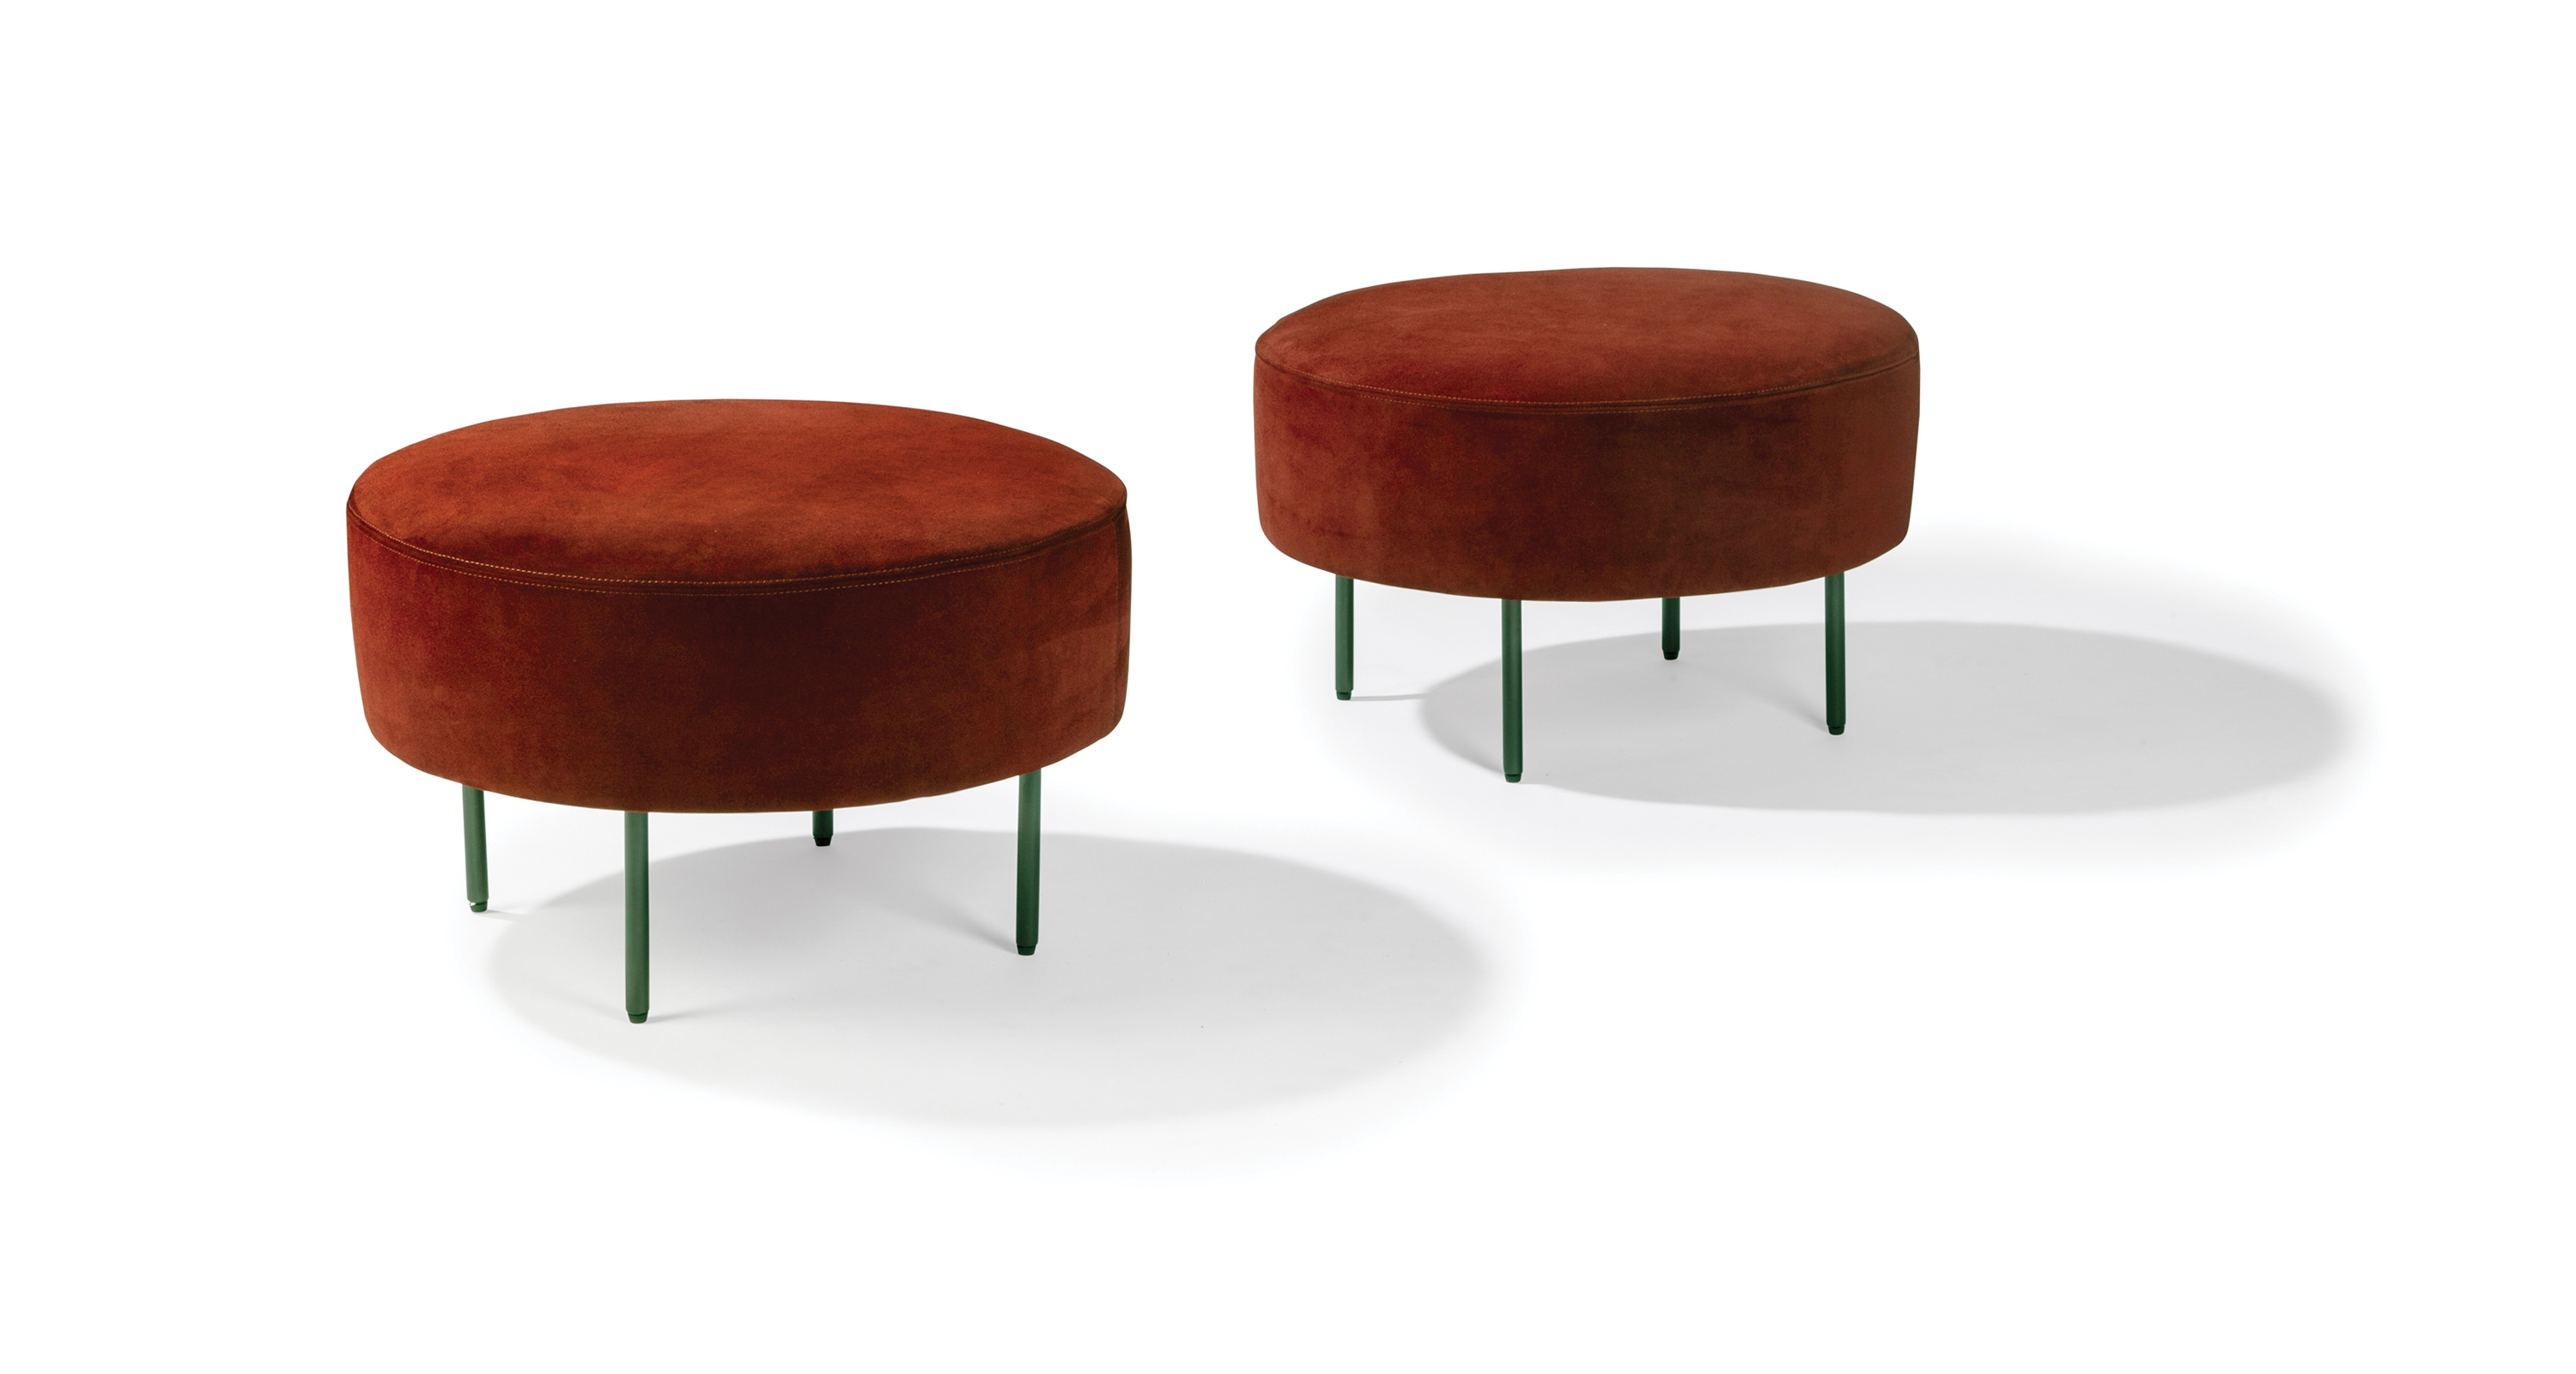 Fantastic Slice Small Round Ottoman Caraccident5 Cool Chair Designs And Ideas Caraccident5Info